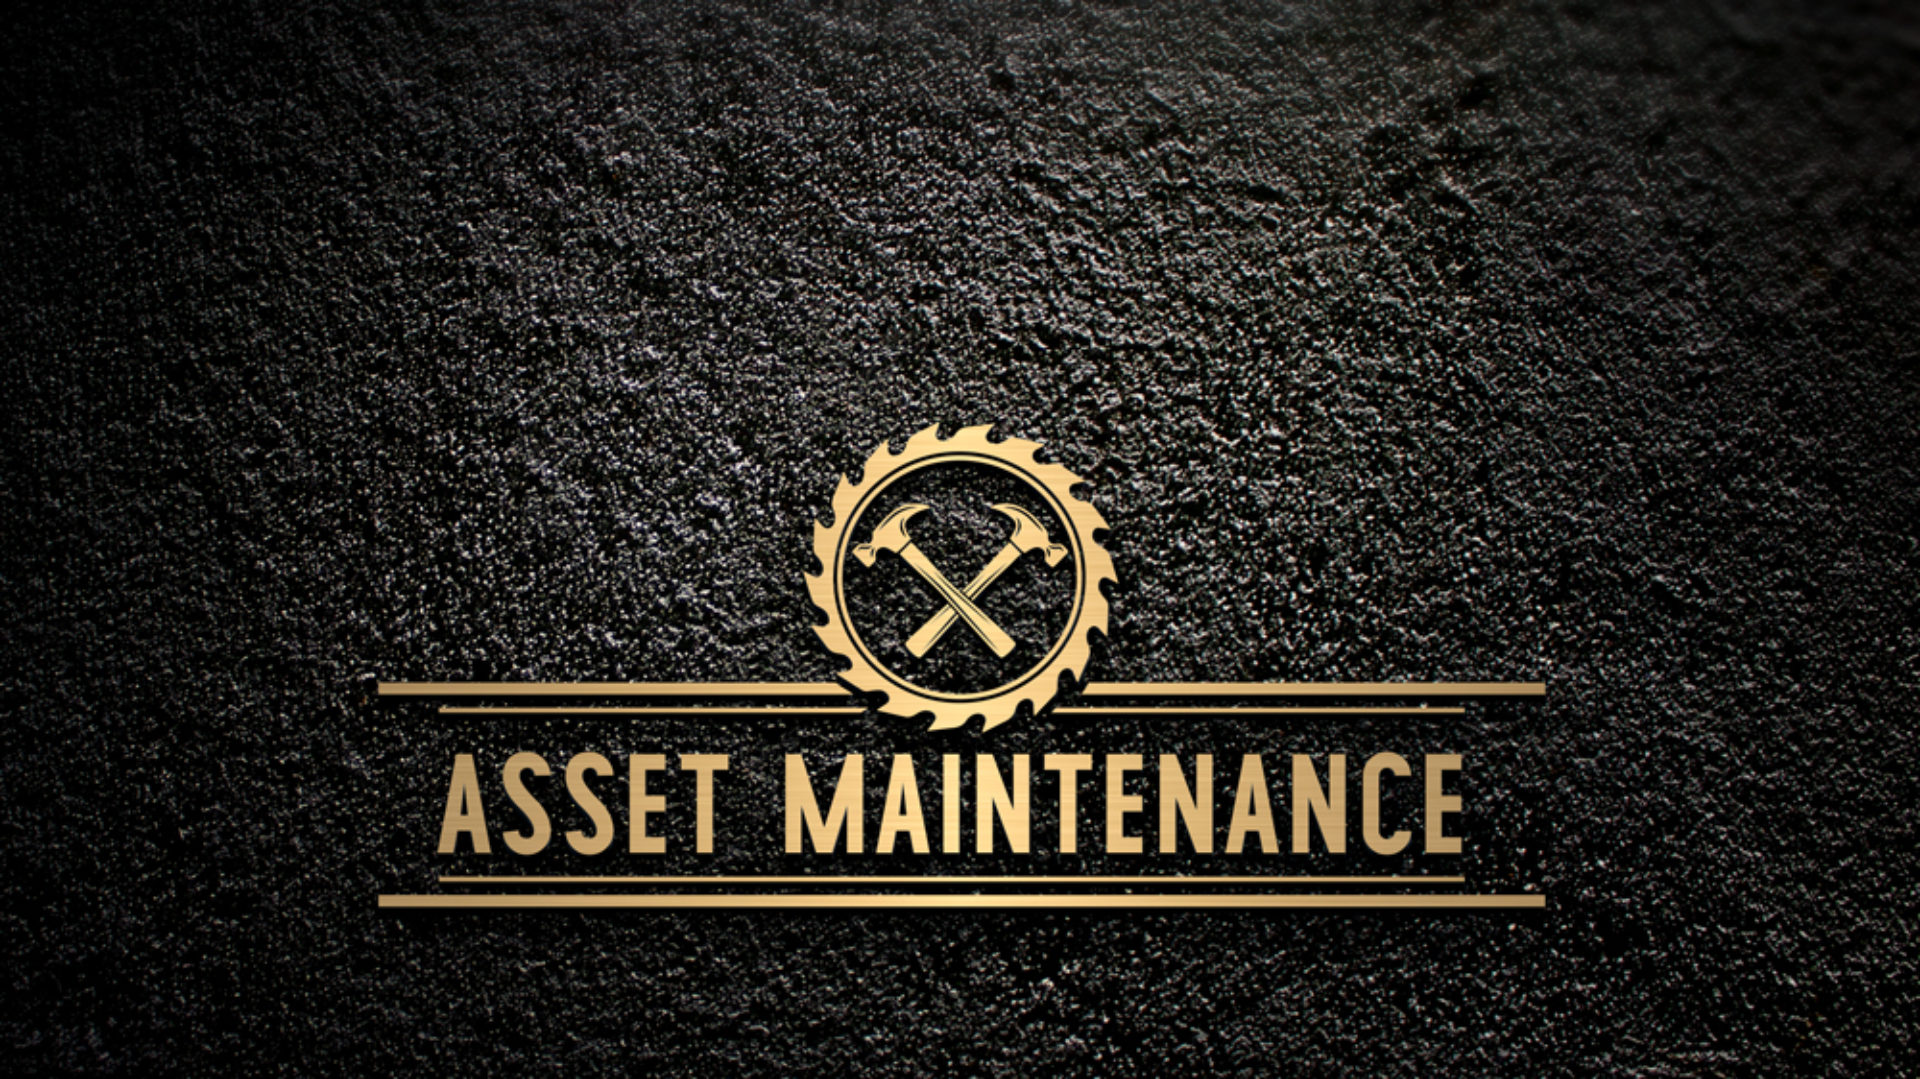 Asset Maintenance OÜ